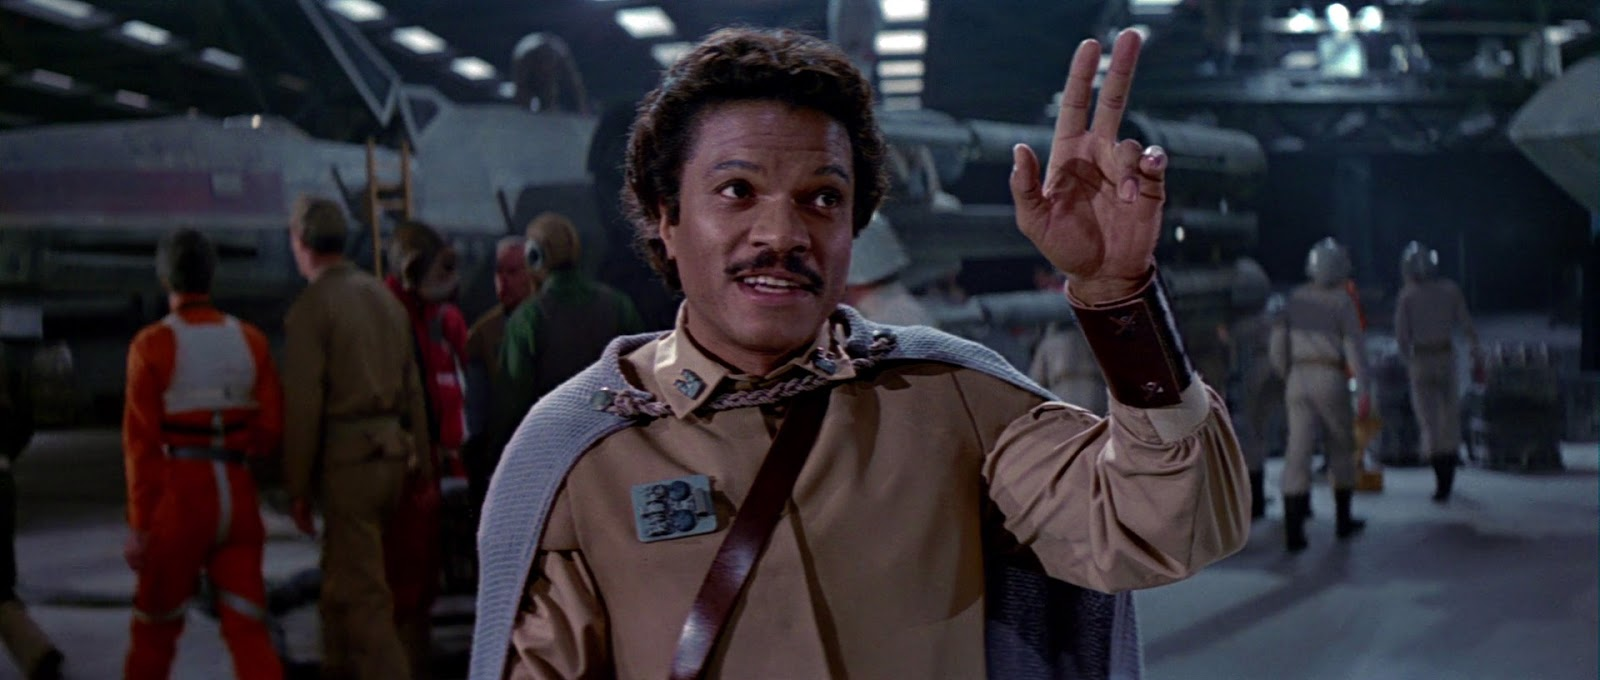 News: Billy Dee Williams To Return As Lando Calrissian In Episode IX